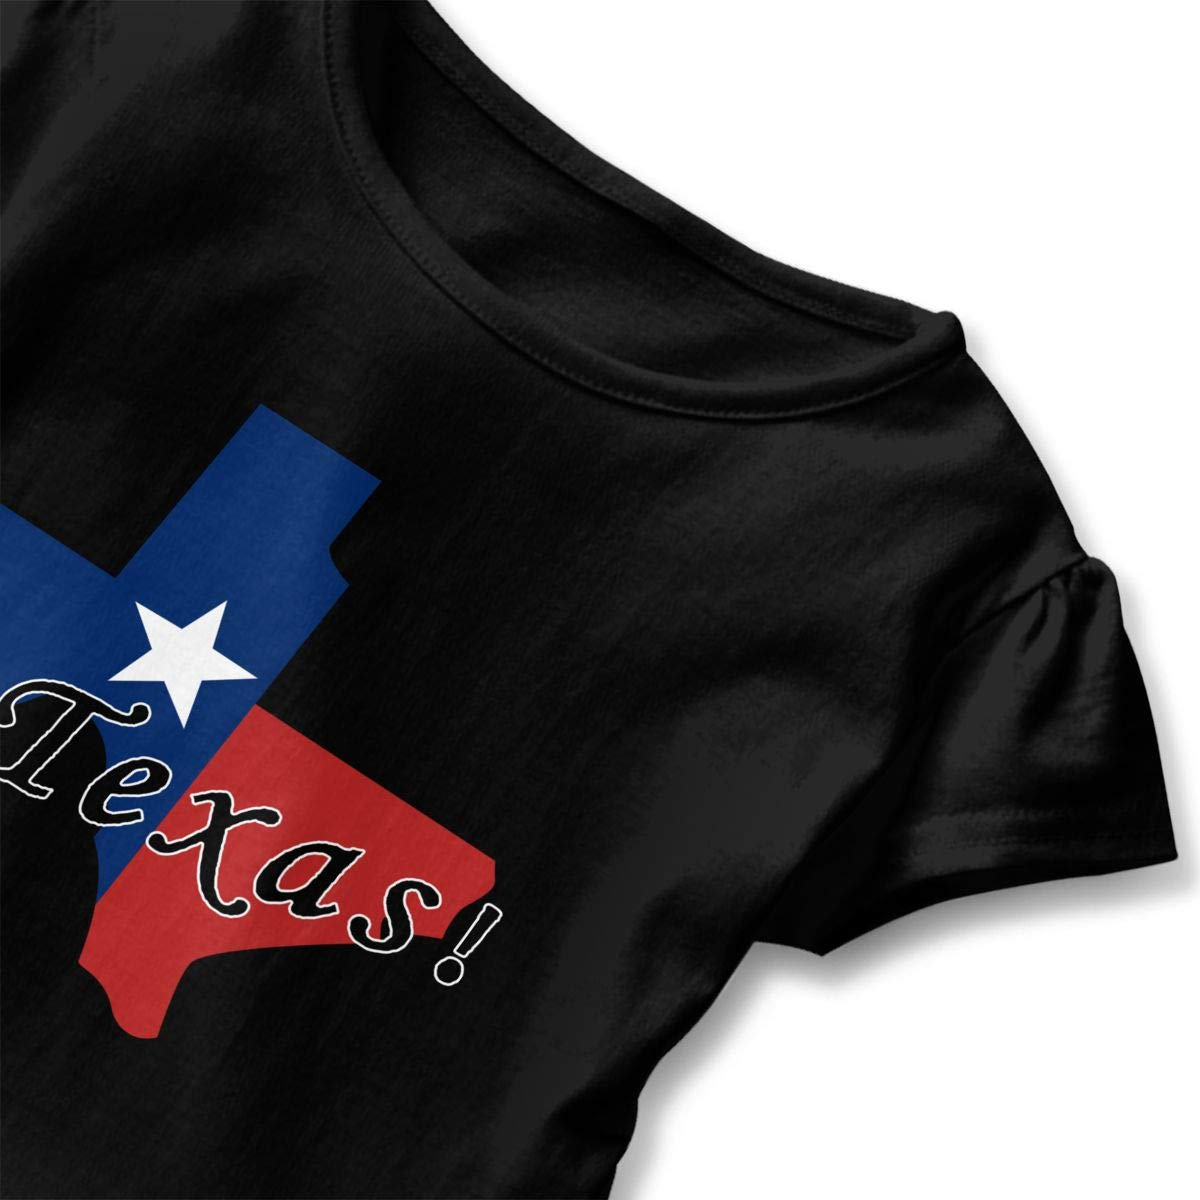 Cute Blouse Clothes with Falbala 2-6T Zi7J9q-0 Short Sleeve Dont Mess with Texas T-Shirts for Girls